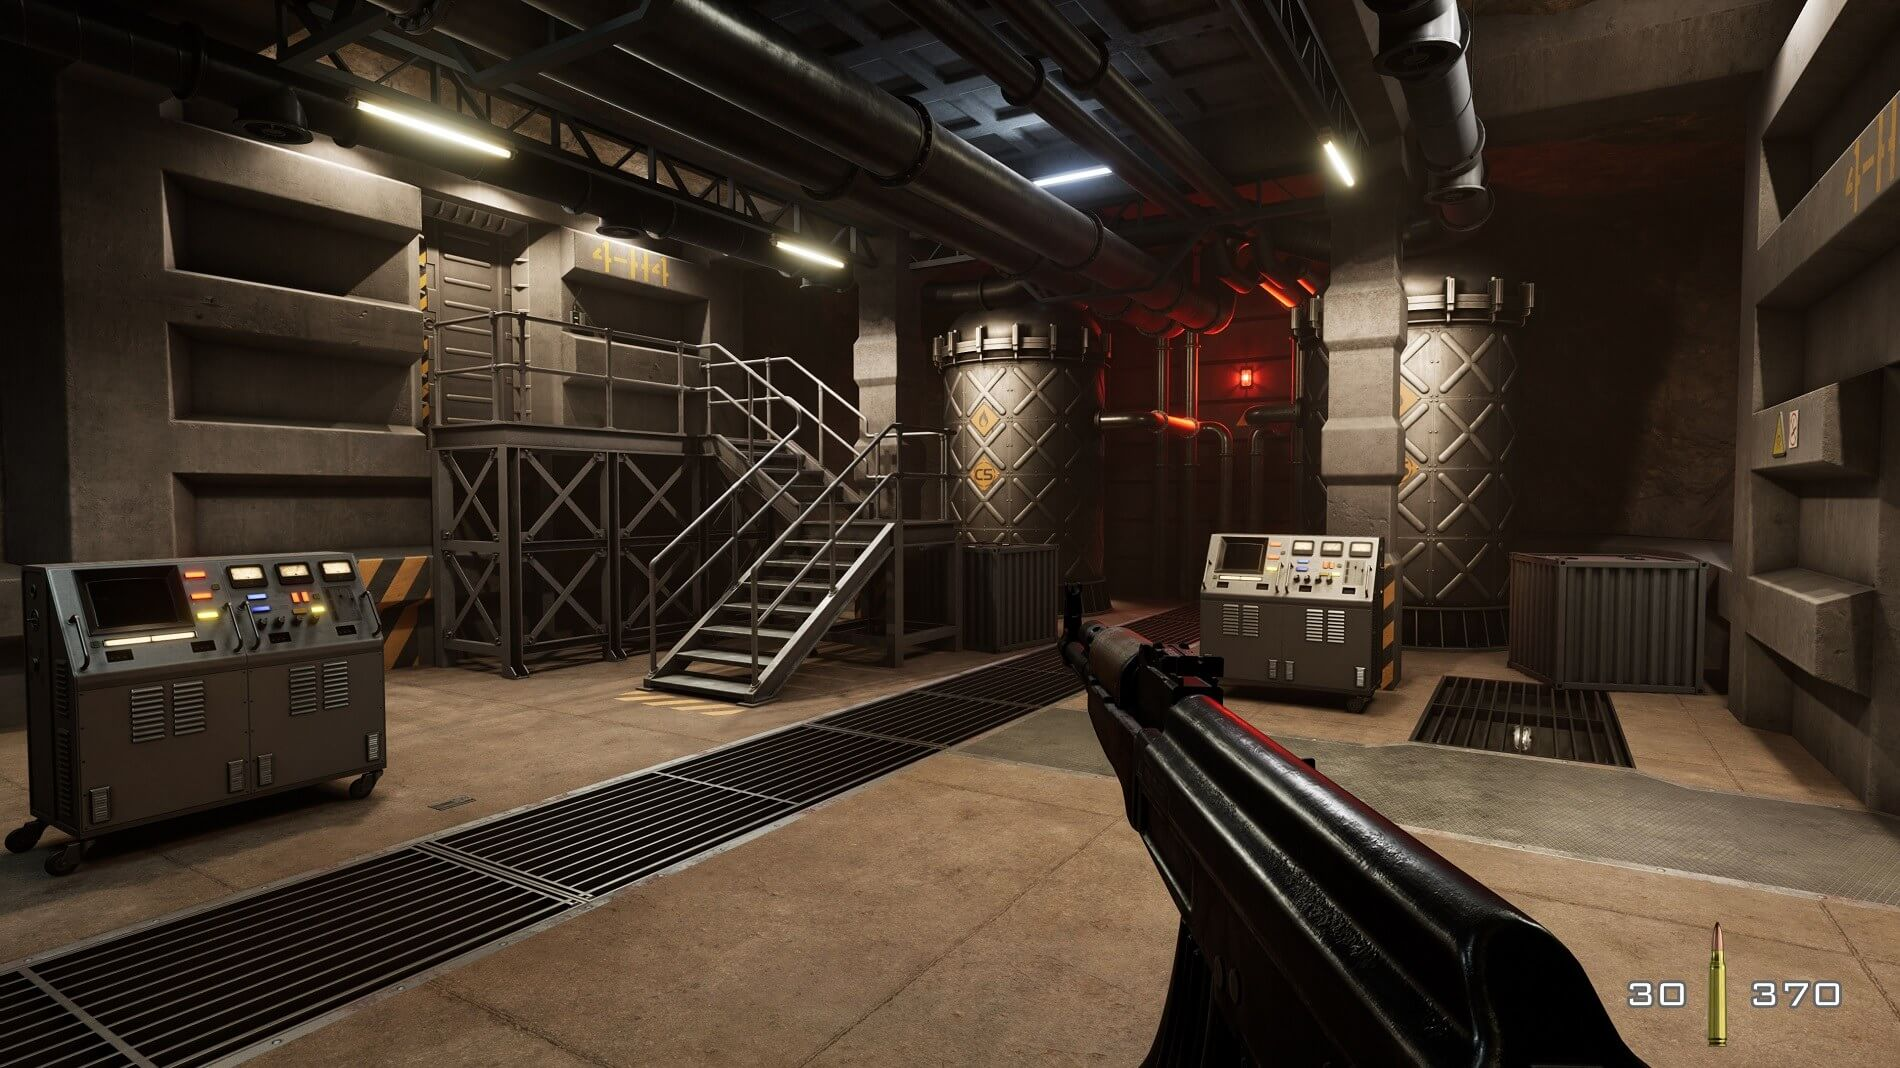 GoldenEye 007 campaign remake looks awesome in latest gameplay clip